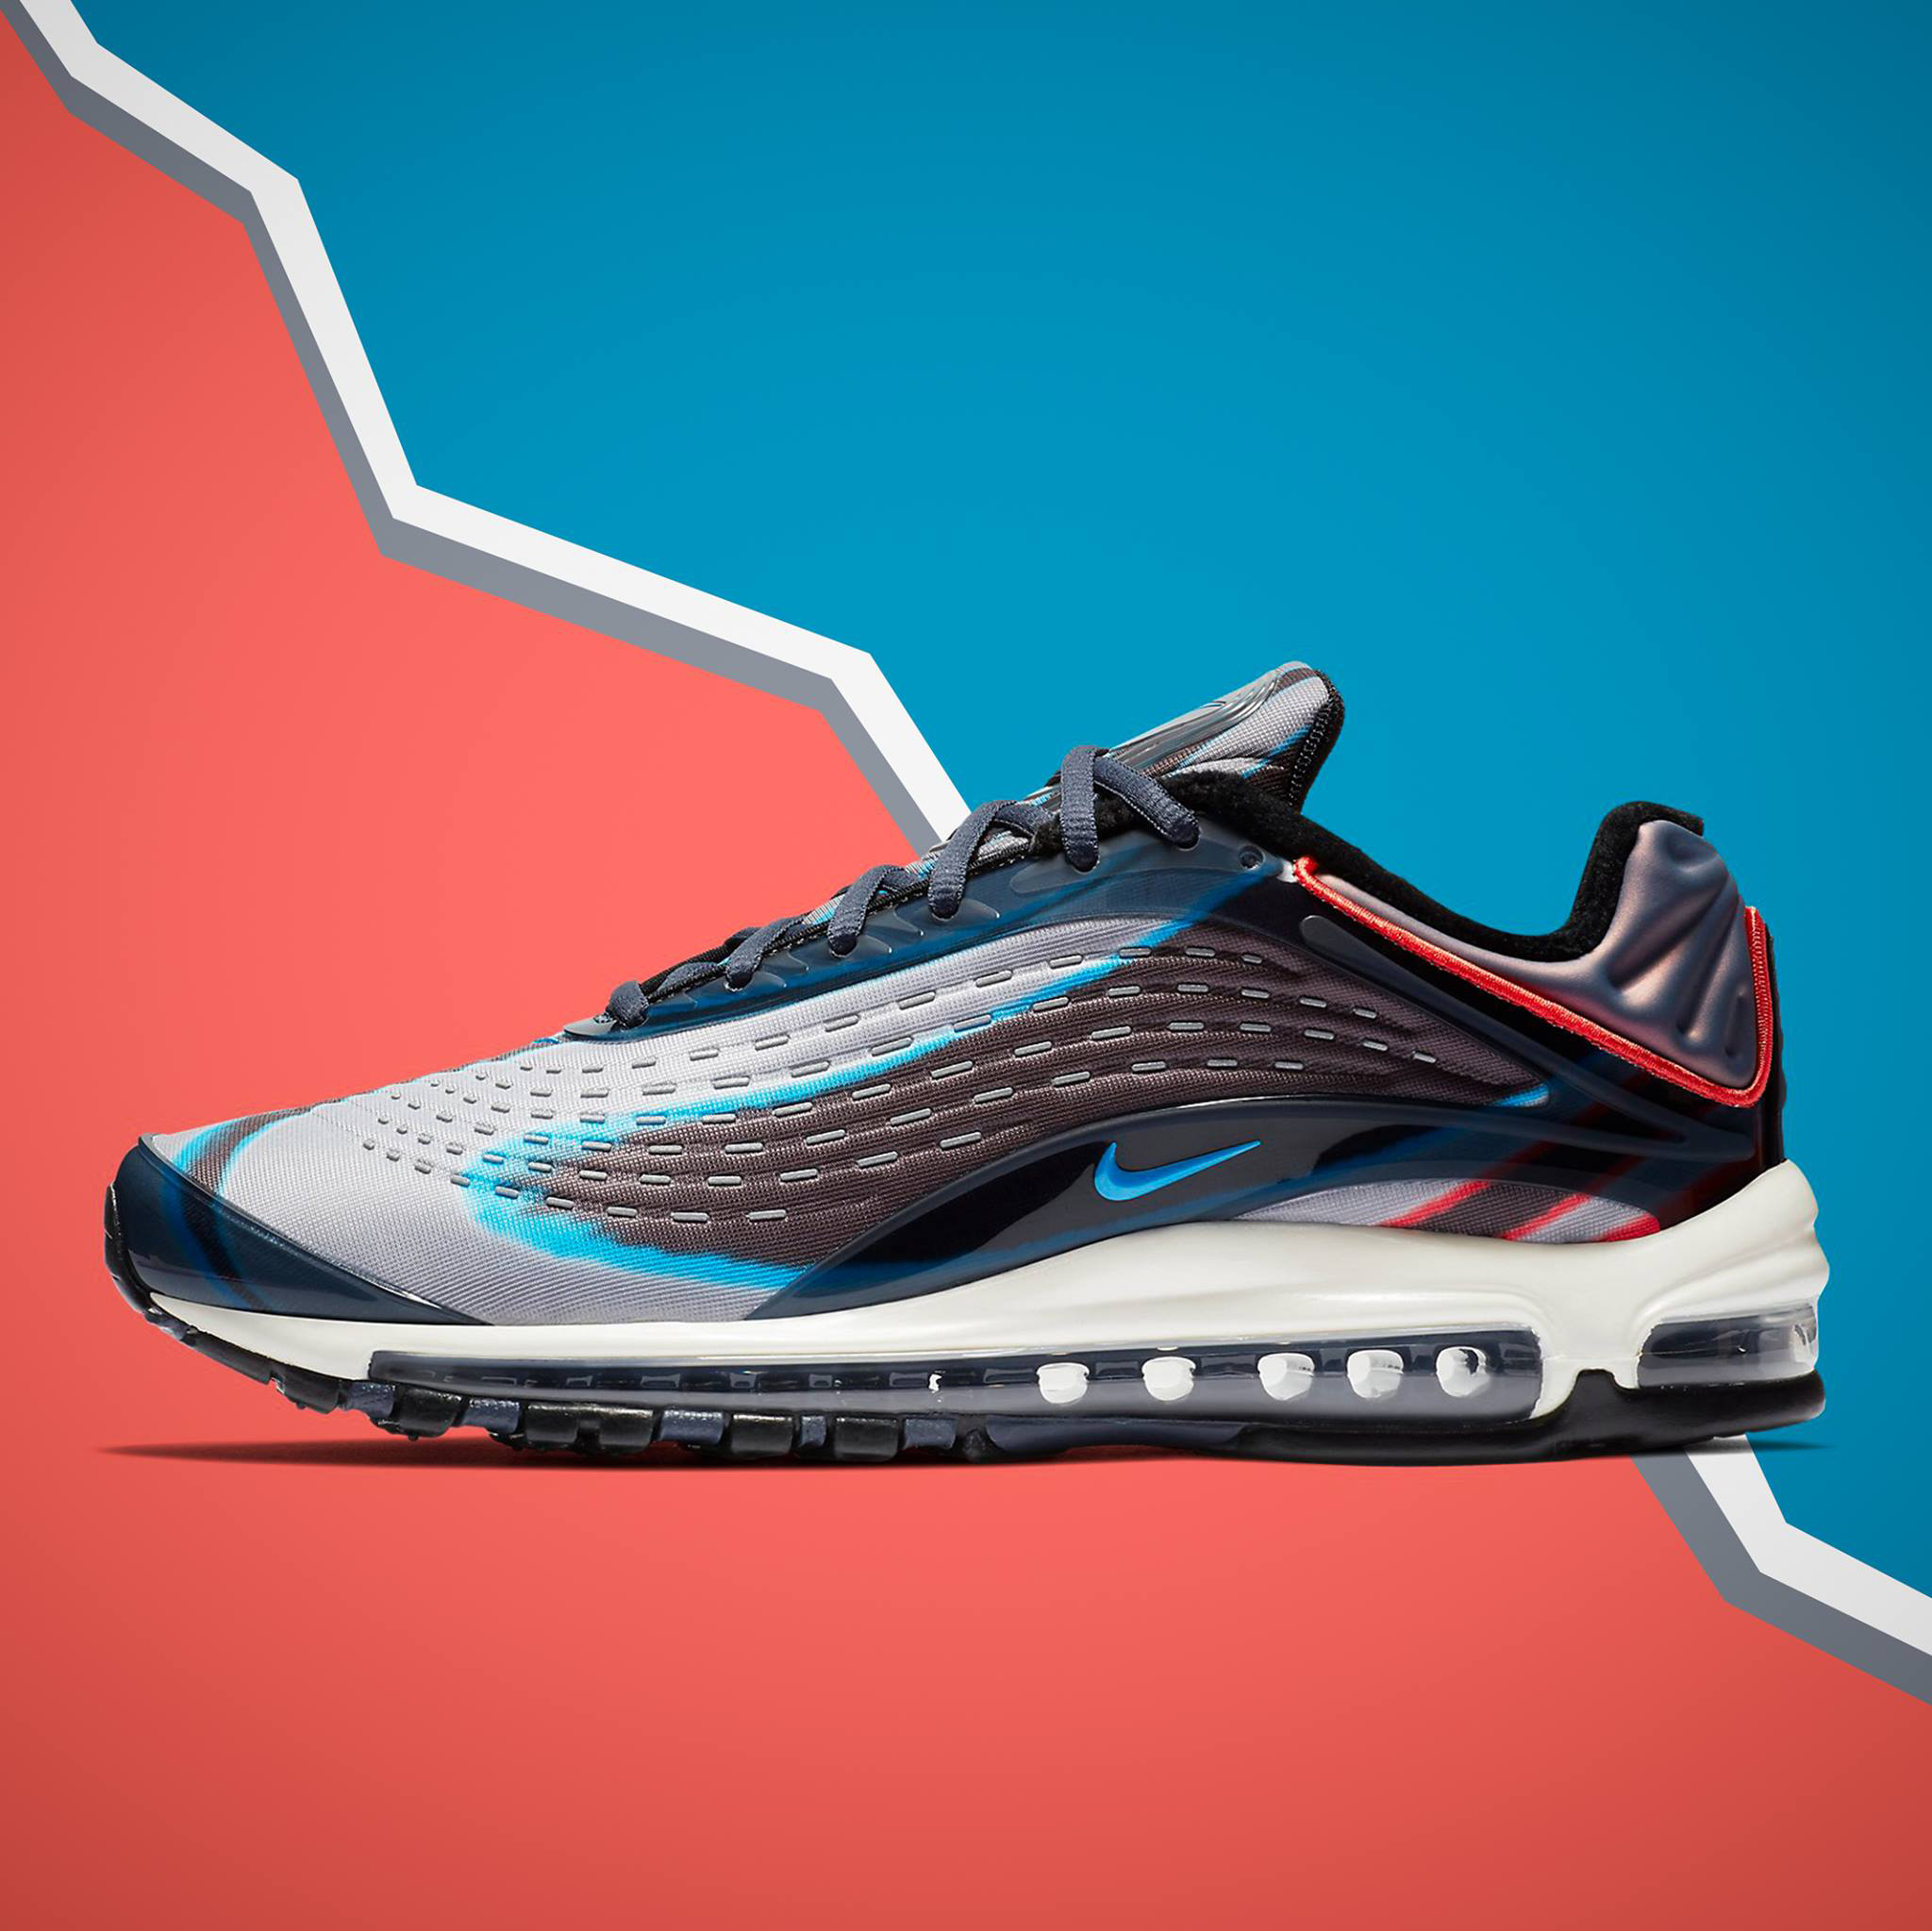 """bb8a42a5f7d Nike Air Max Deluxe Now Available in """"Thunder Blue Wolf Grey"""" Colorway"""